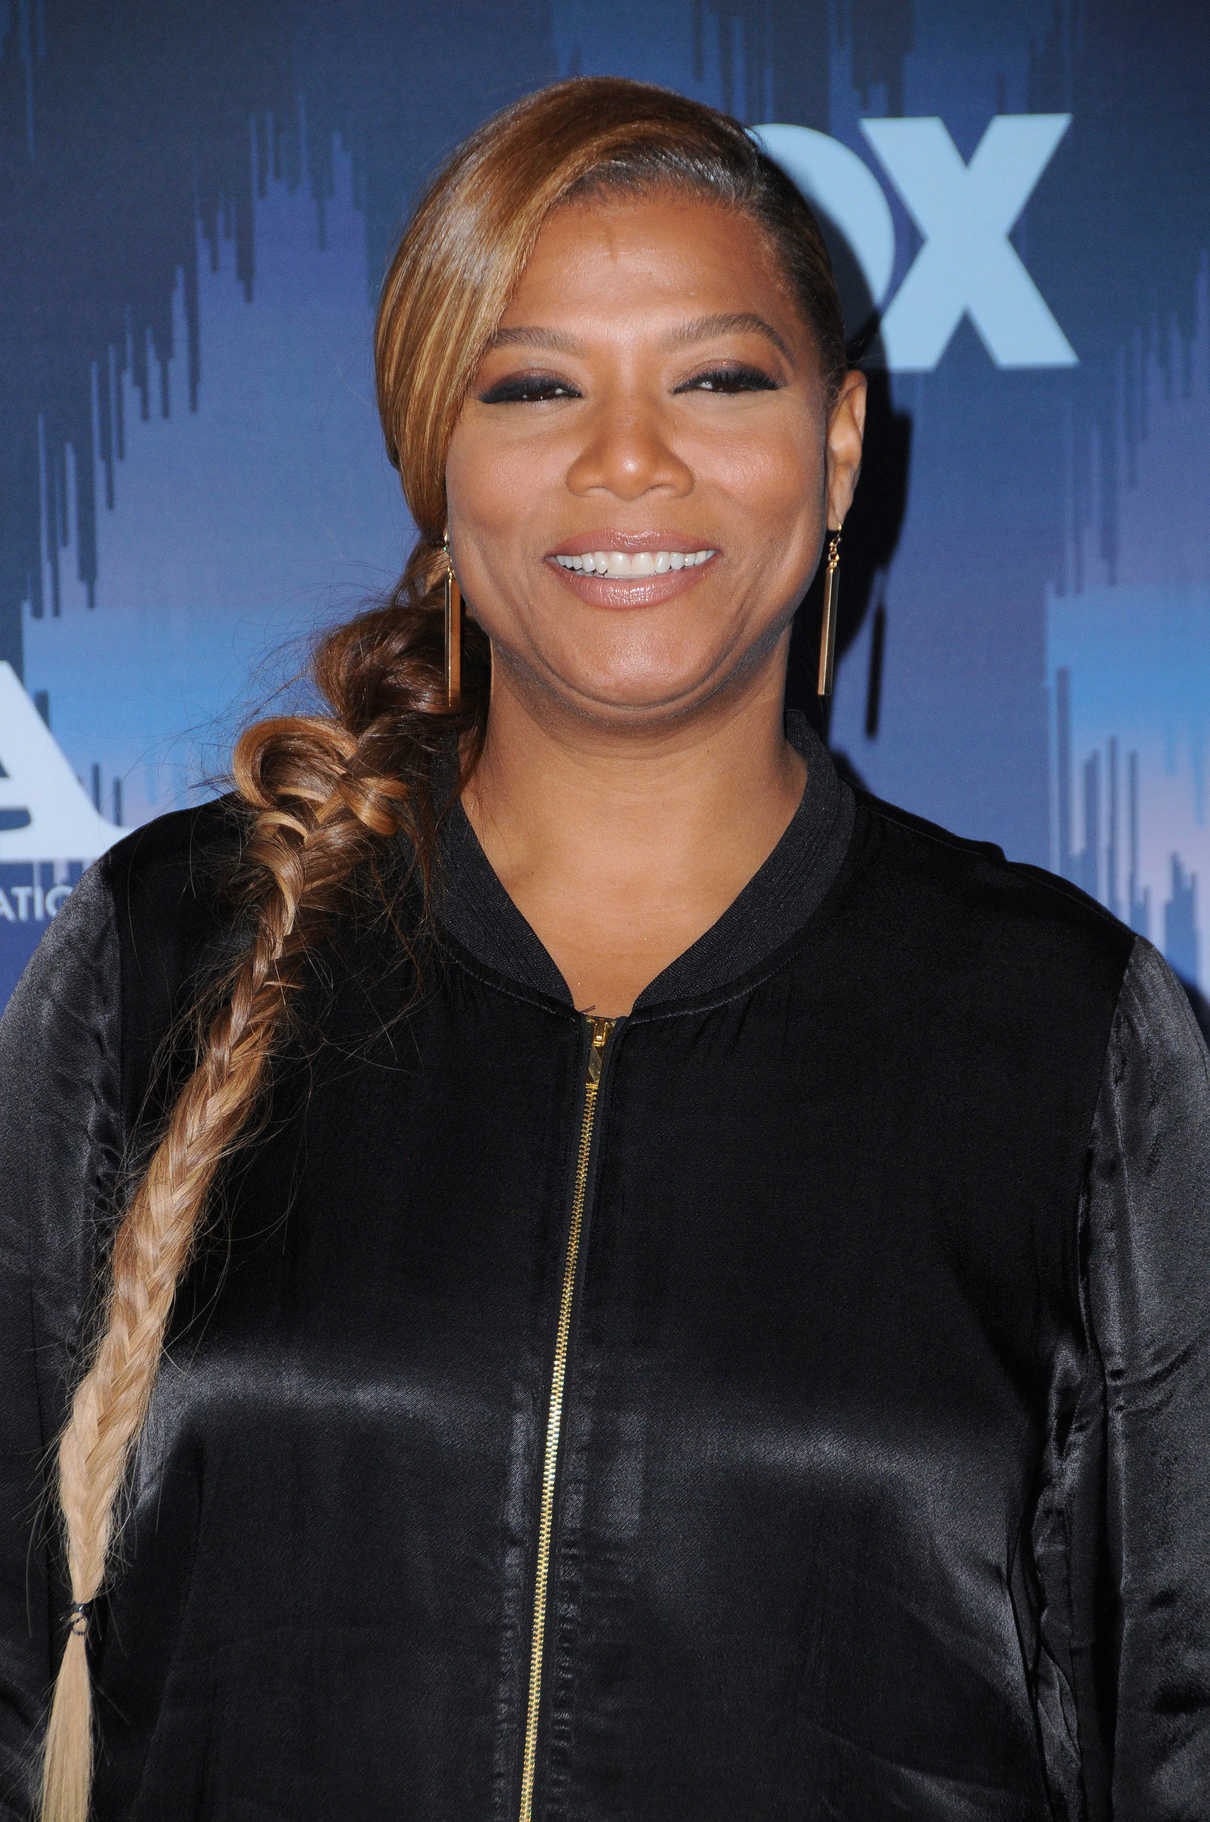 Queen Latifah at the FOX All-Star Party During the 2017 Winter TCA Tour in Pasadena 01/11/2017-5